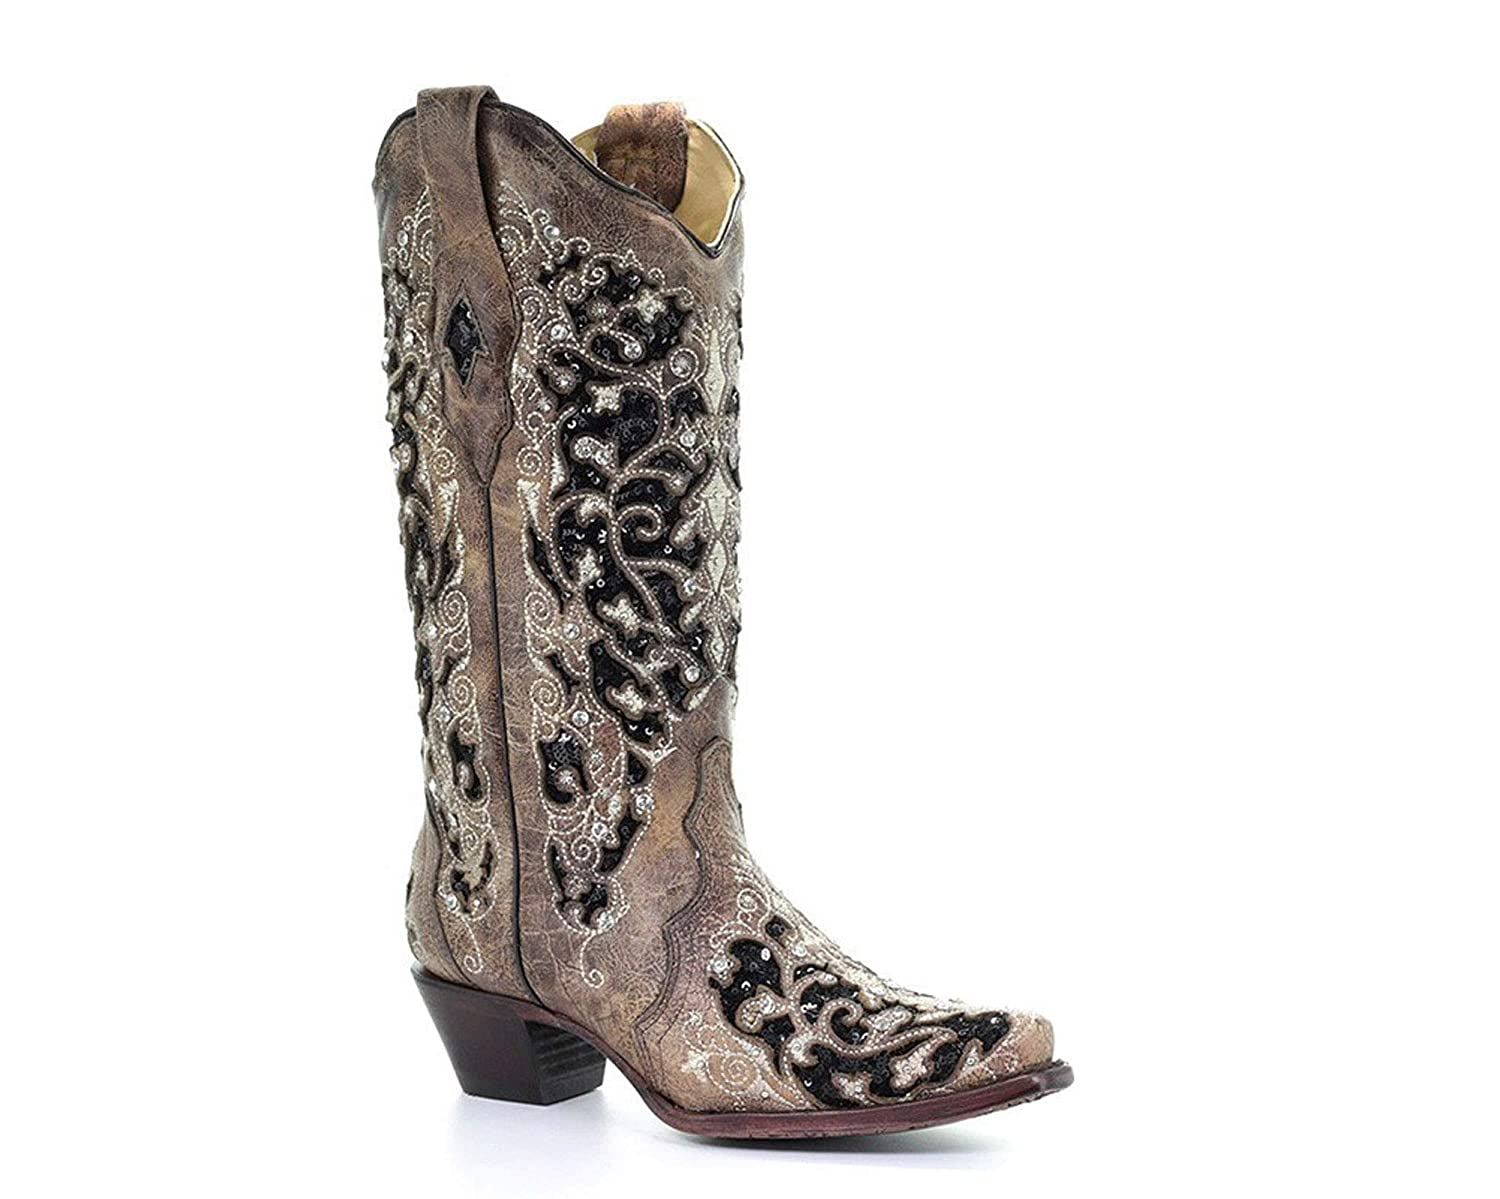 Image of CORRAL Womens Brown Inlay & Flowered Embroidery & Studs & Crystals, Size: 6.5, Width: M (A3569-LD-M-6.5)